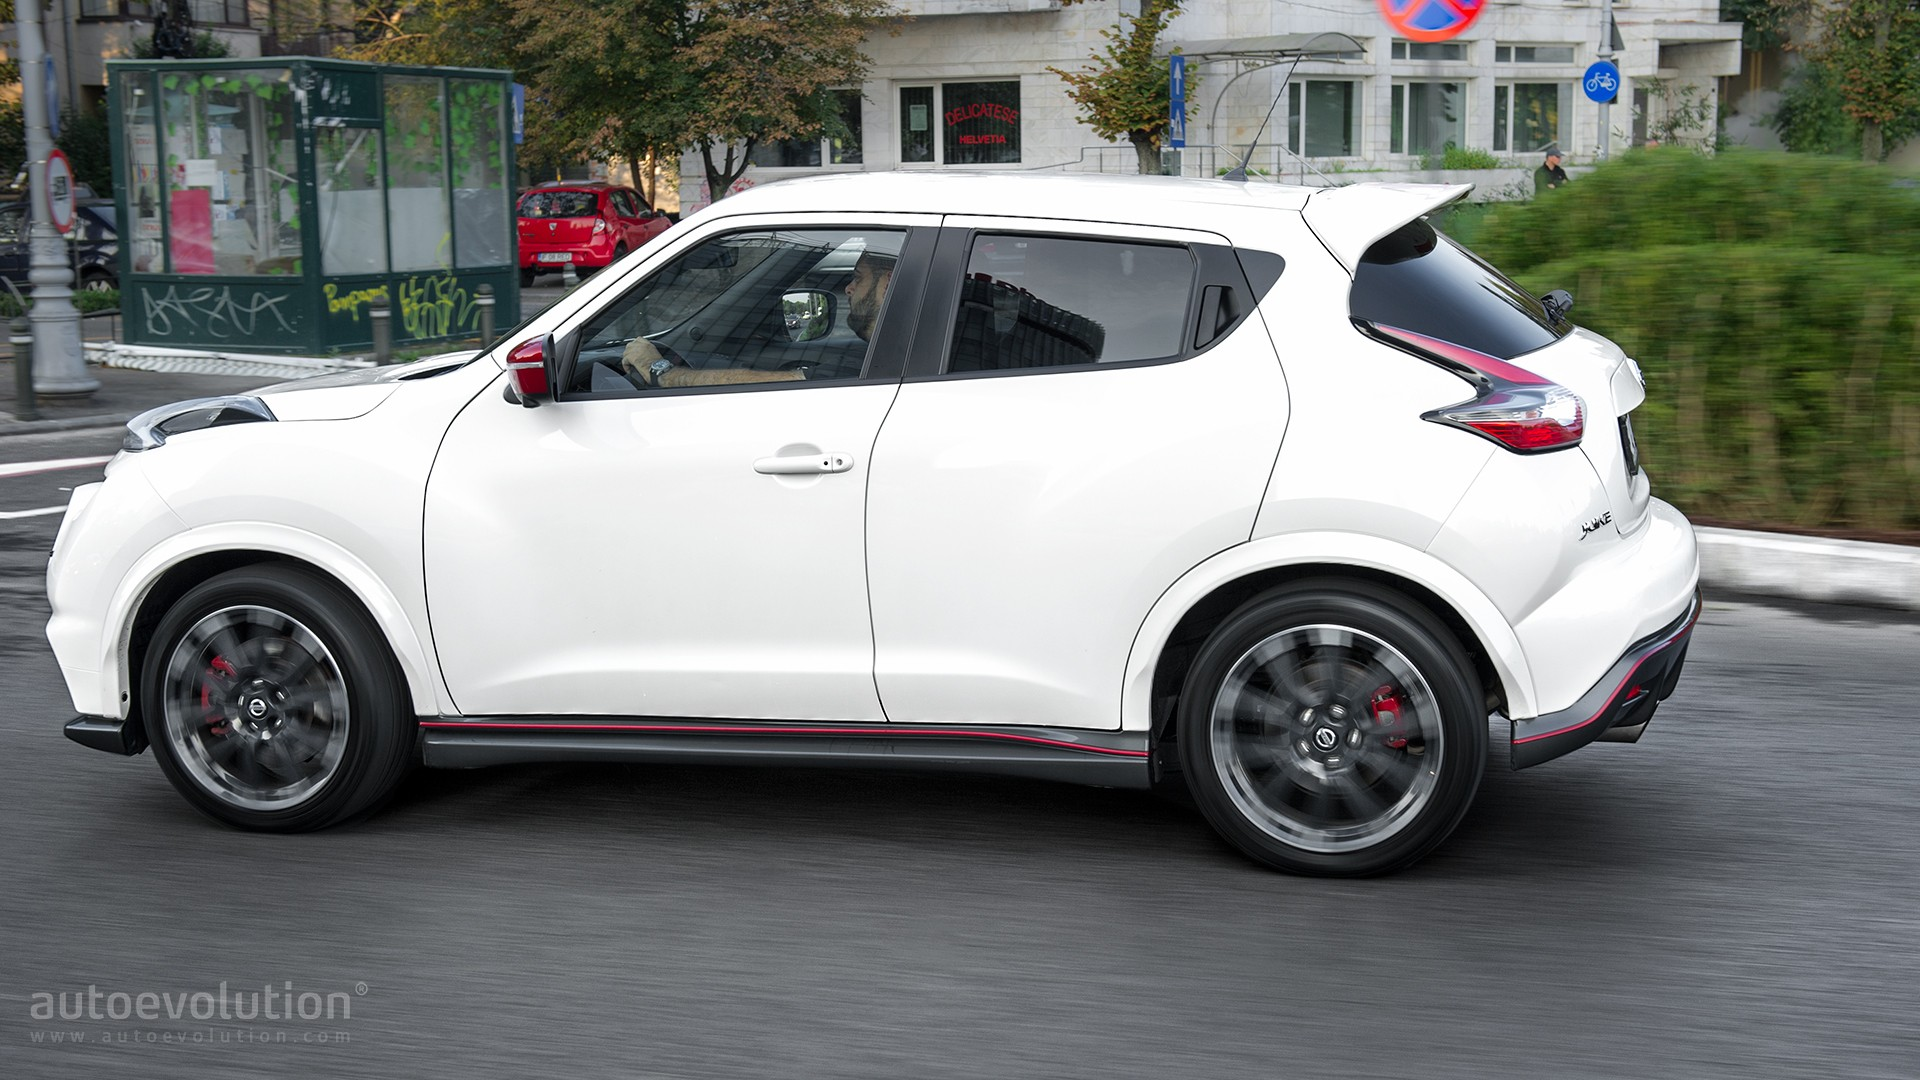 2016 Nissan Juke >> 2016 Nissan Juke Nismo RS Review - autoevolution